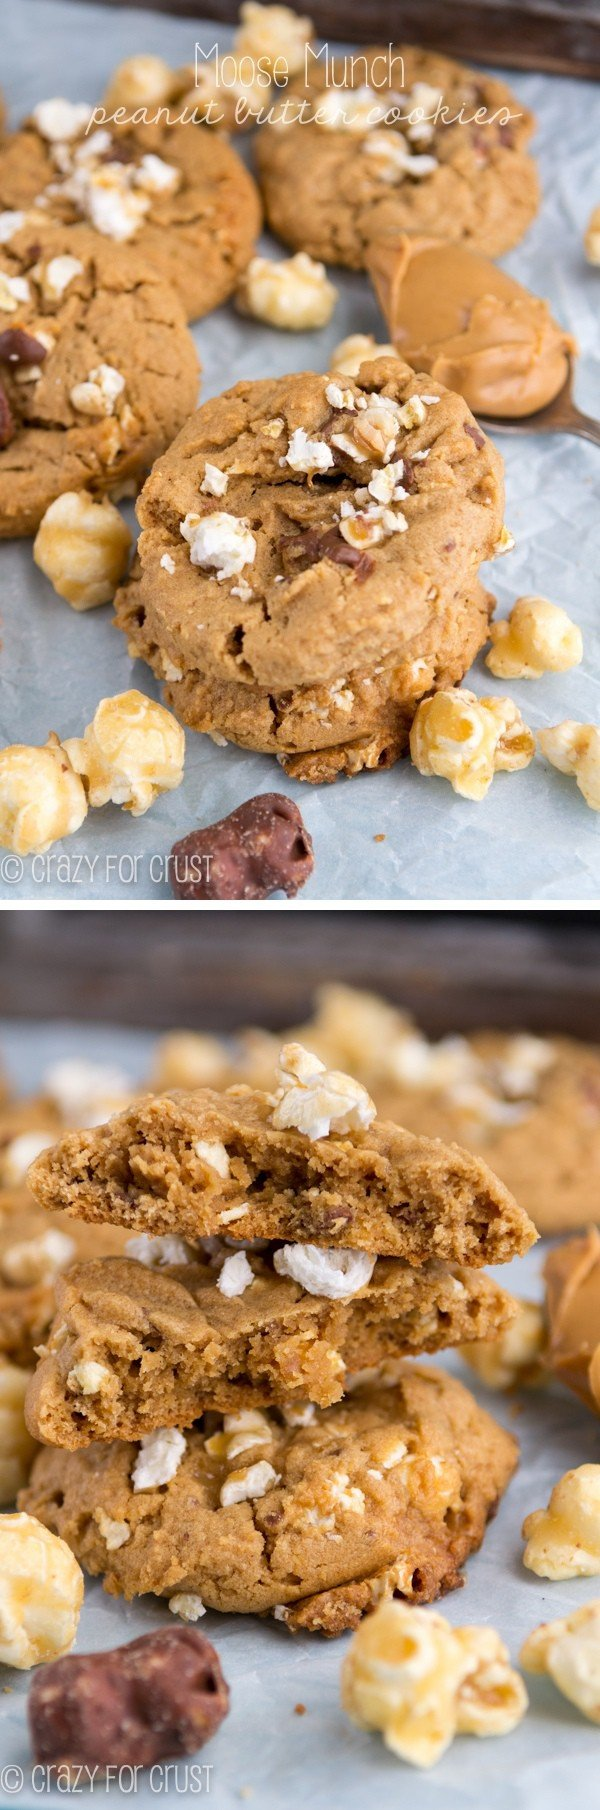 Moose Munch Peanut Butter Cookies | crazyforcrust.com